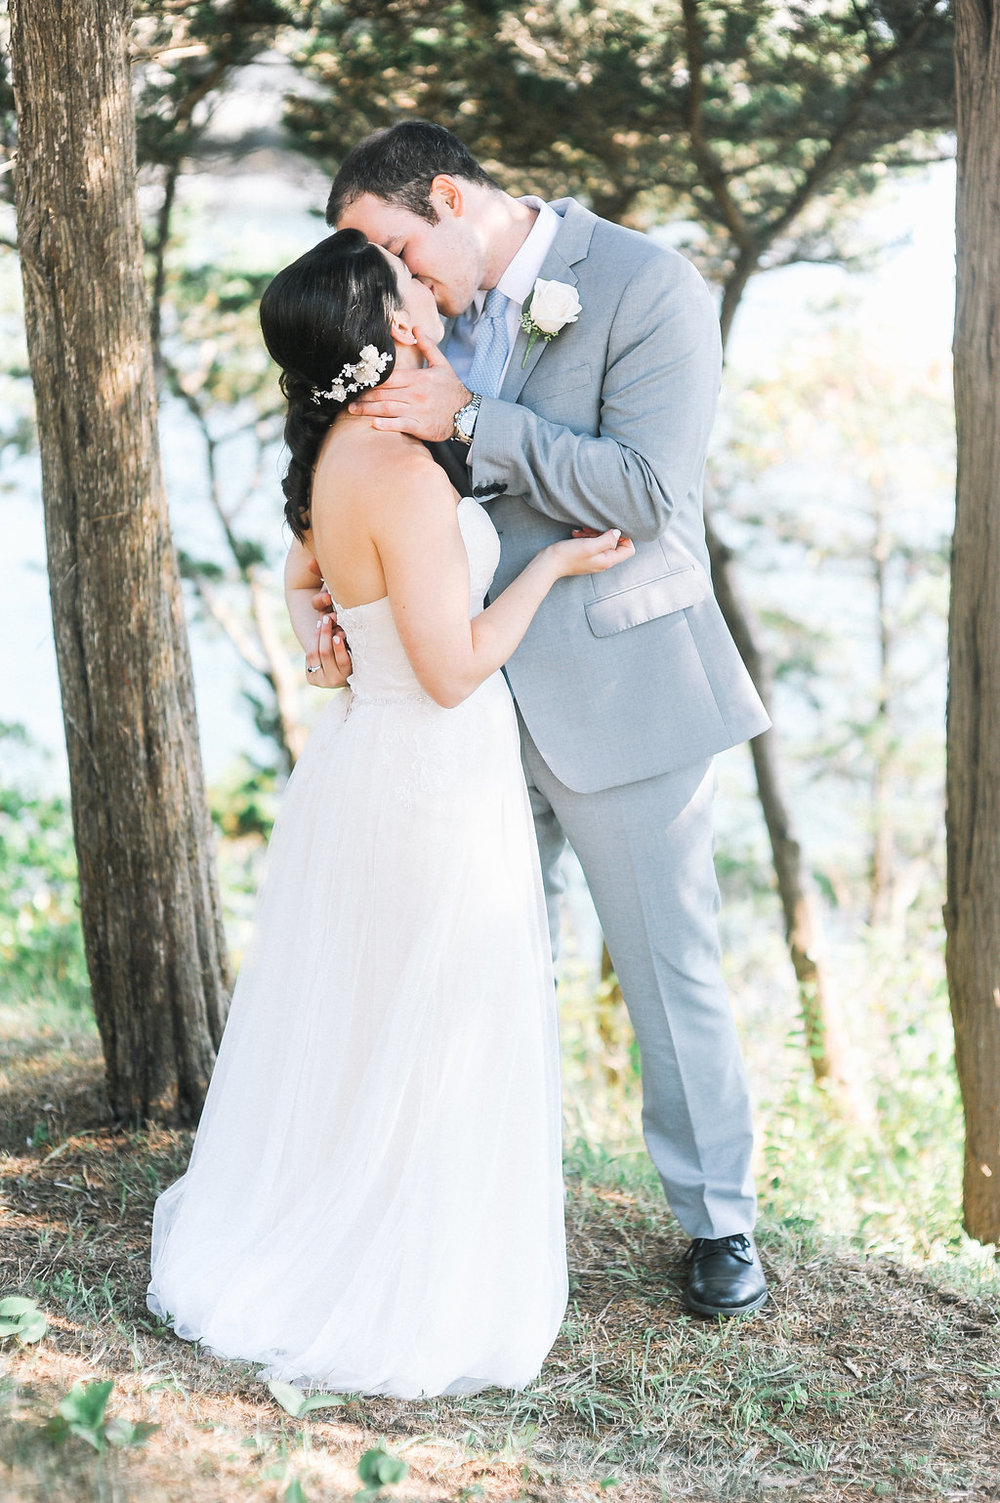 BrideGroomPortraits_Dragonline_Studios_Jamestown_RI_Wedding-42.jpg